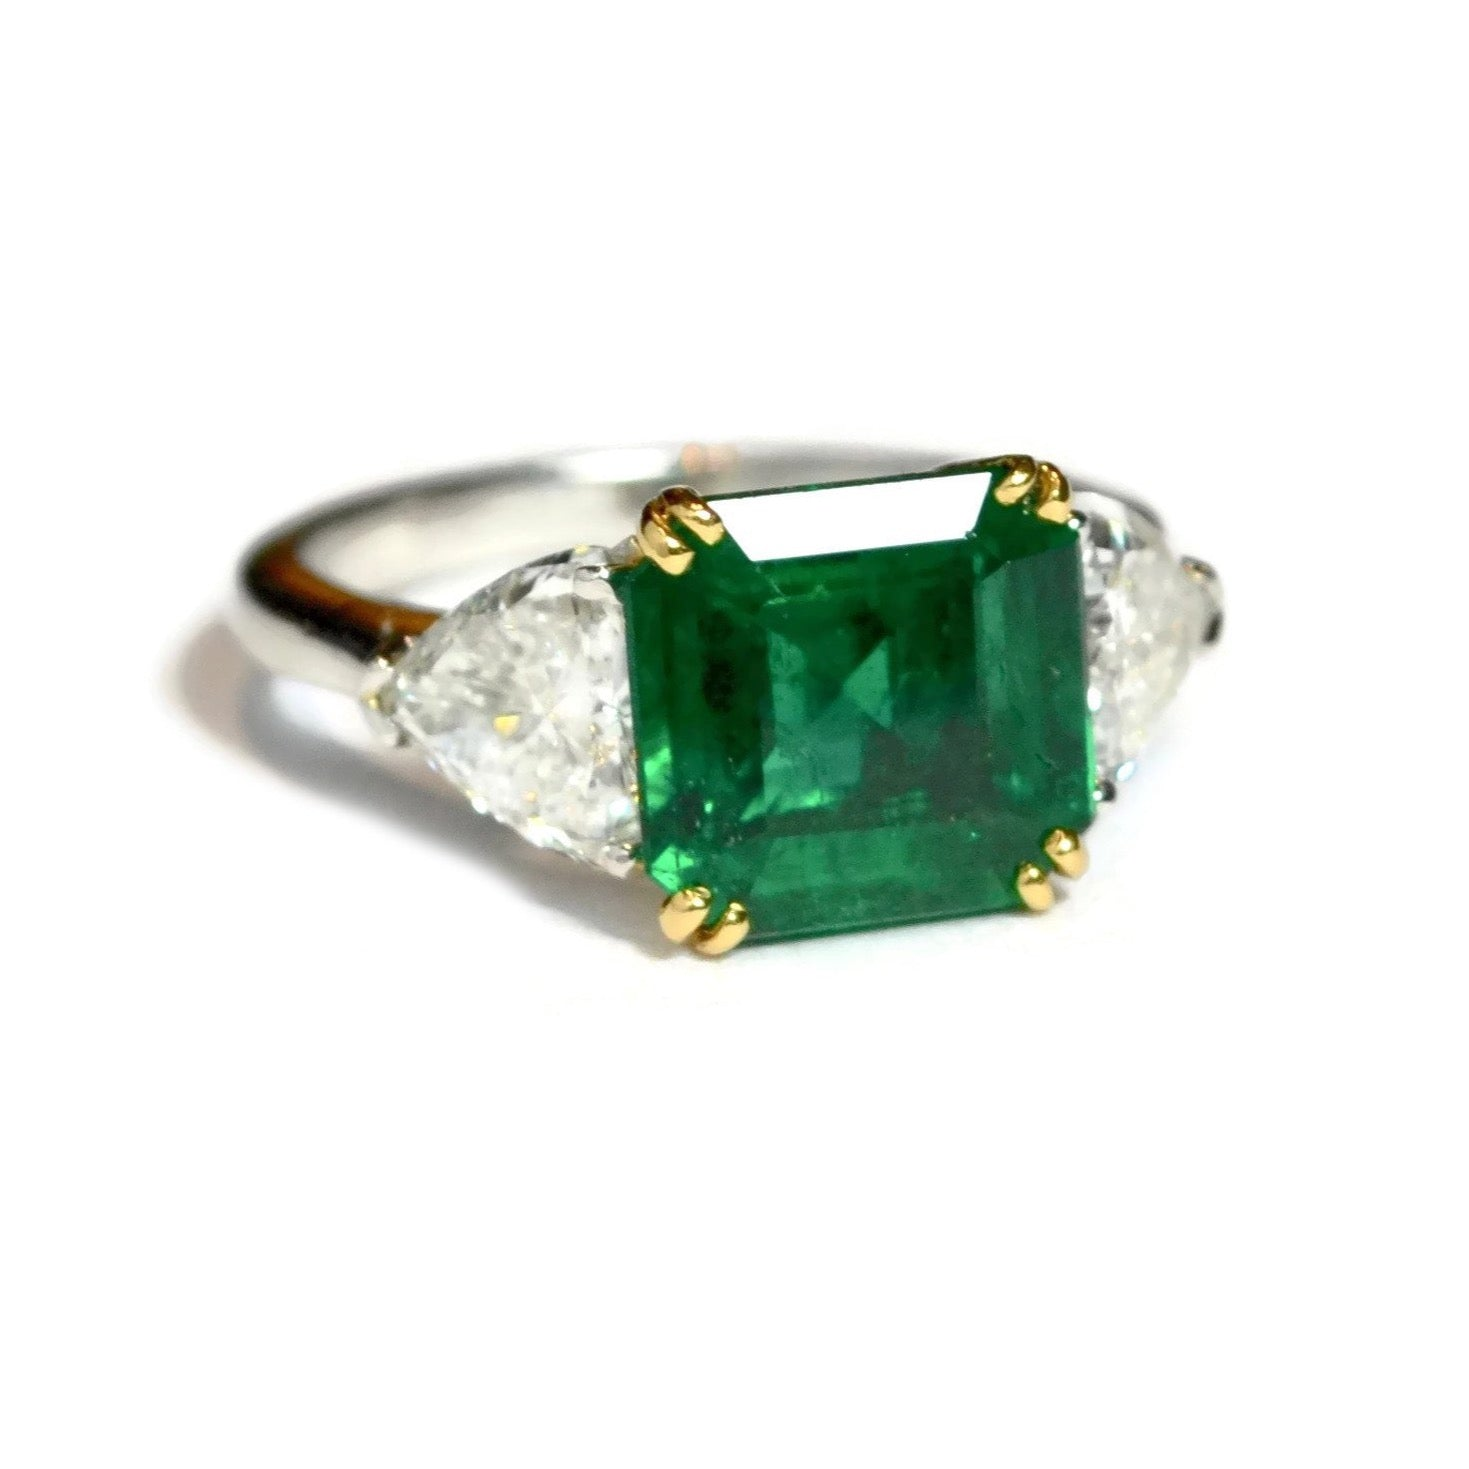 jewelers ring trillions diamonds af kind unique copy with octagonal platinum diamond one a emerald and products of